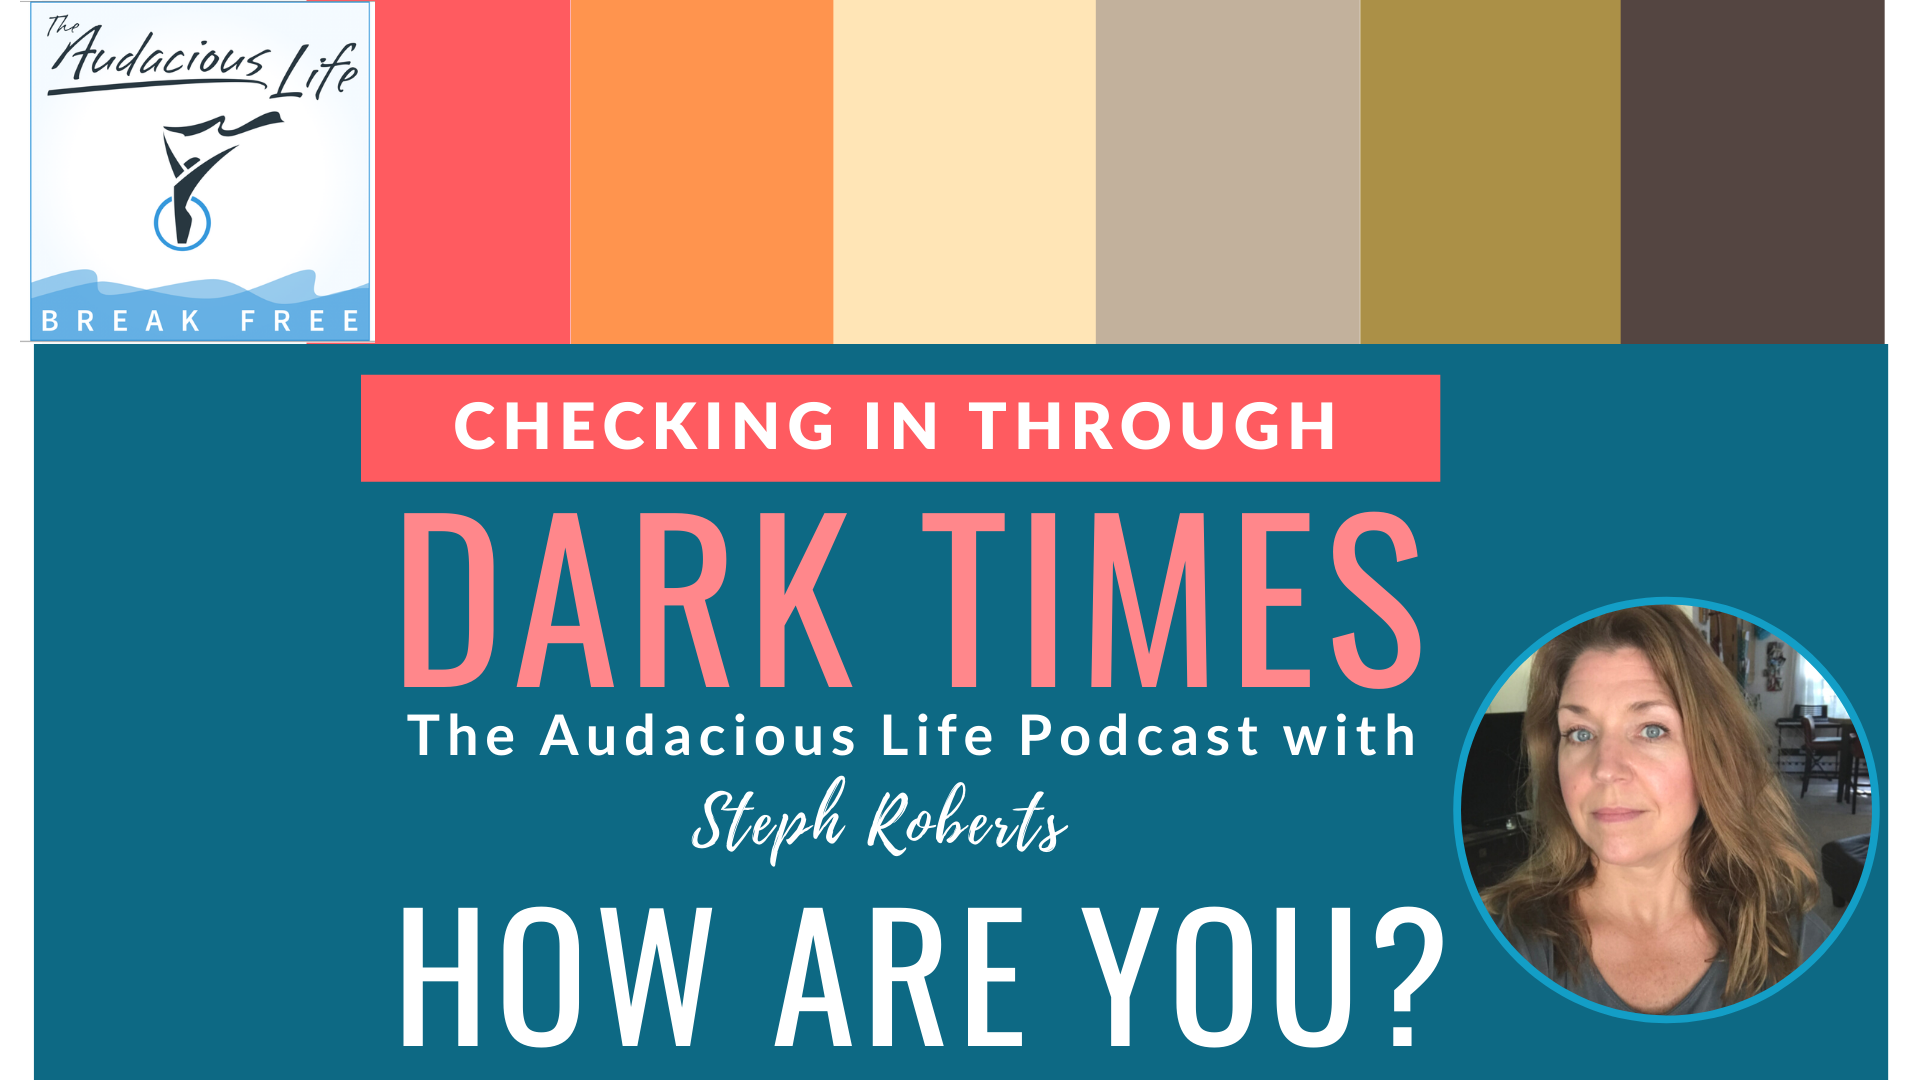 Checking in through dark times - How are you?